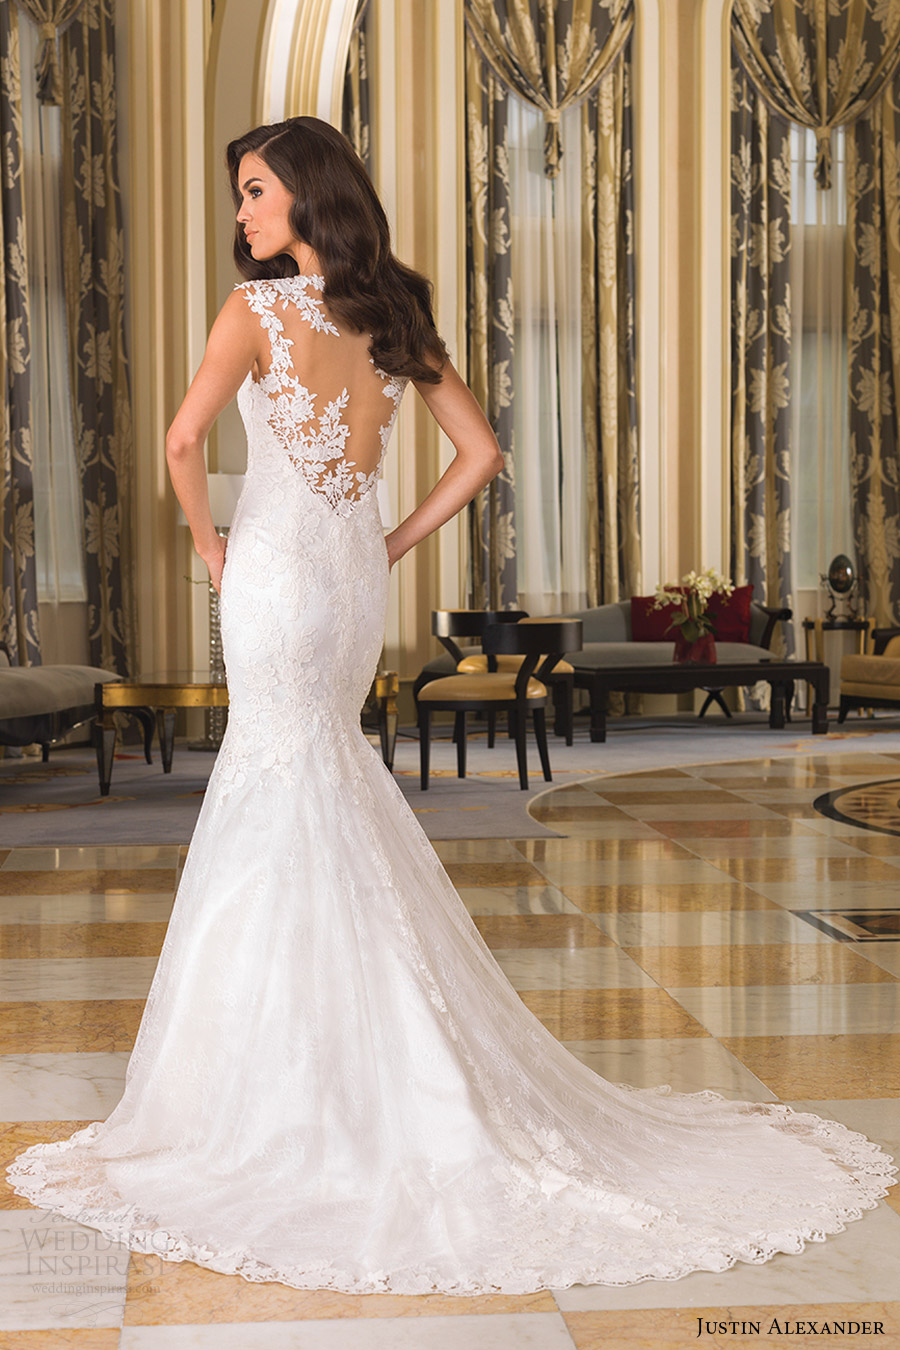 justin alexander bridal fall 2016 cap sleeves vneck fit flare chantilly lace wedding dress (8858) bv sheer back train